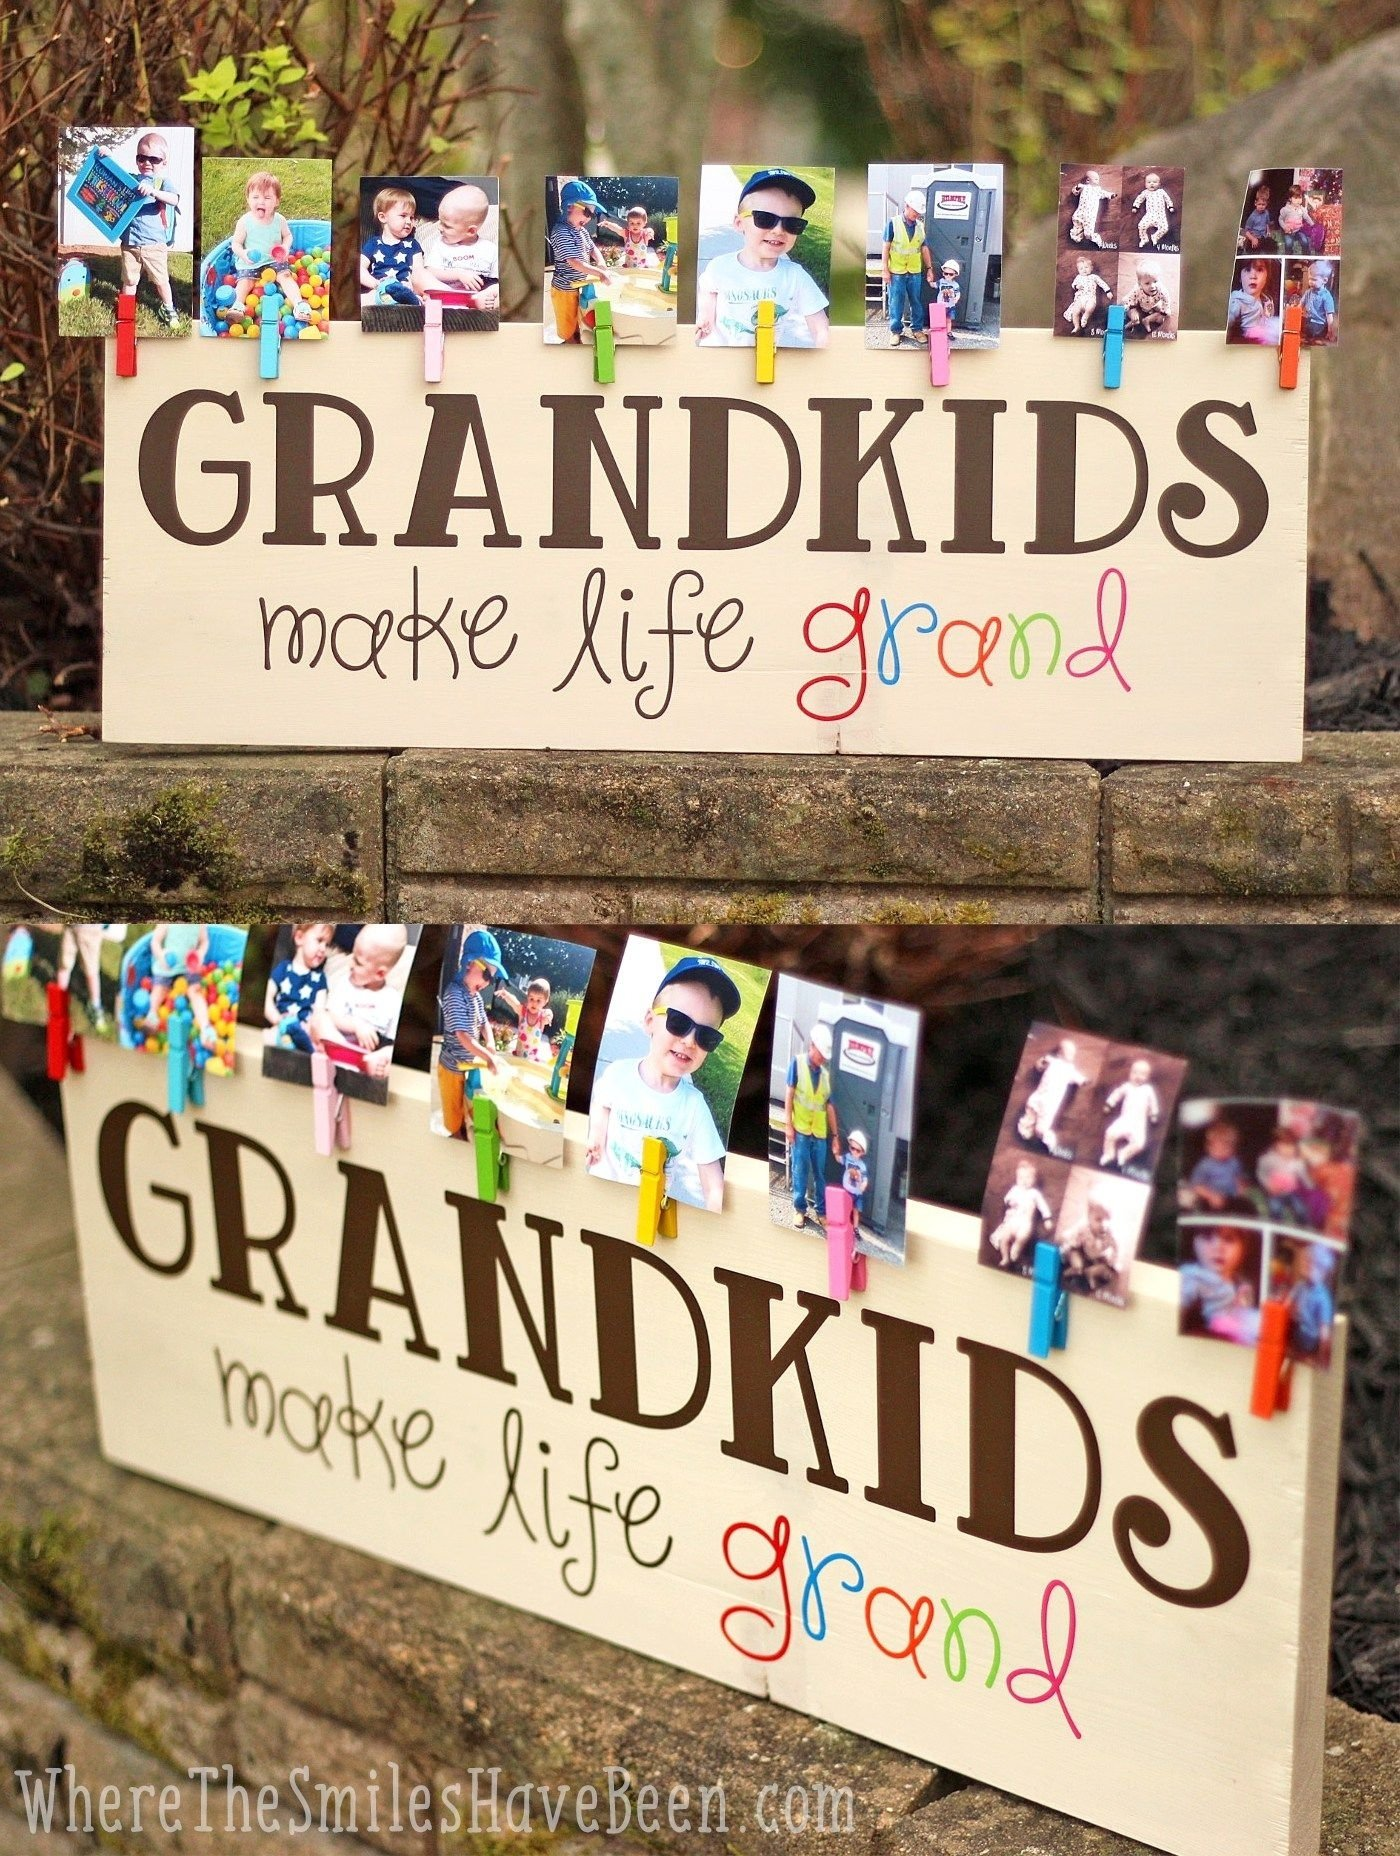 10 Most Recommended Grandparents To Be Gift Ideas colorful grandkids make life grand wood sign photo display 2020